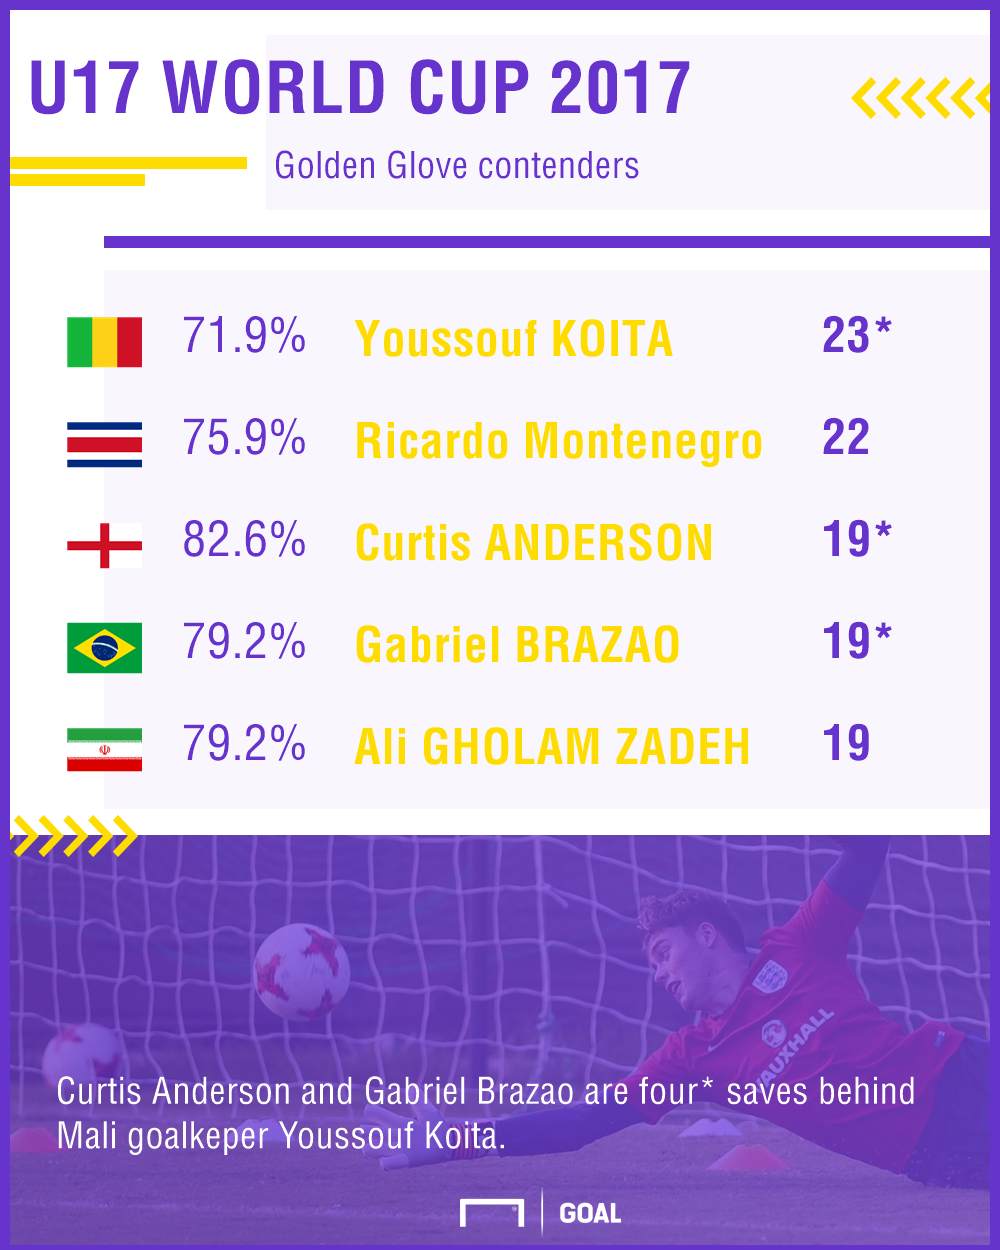 U17 World Cup Golden Glove contenders